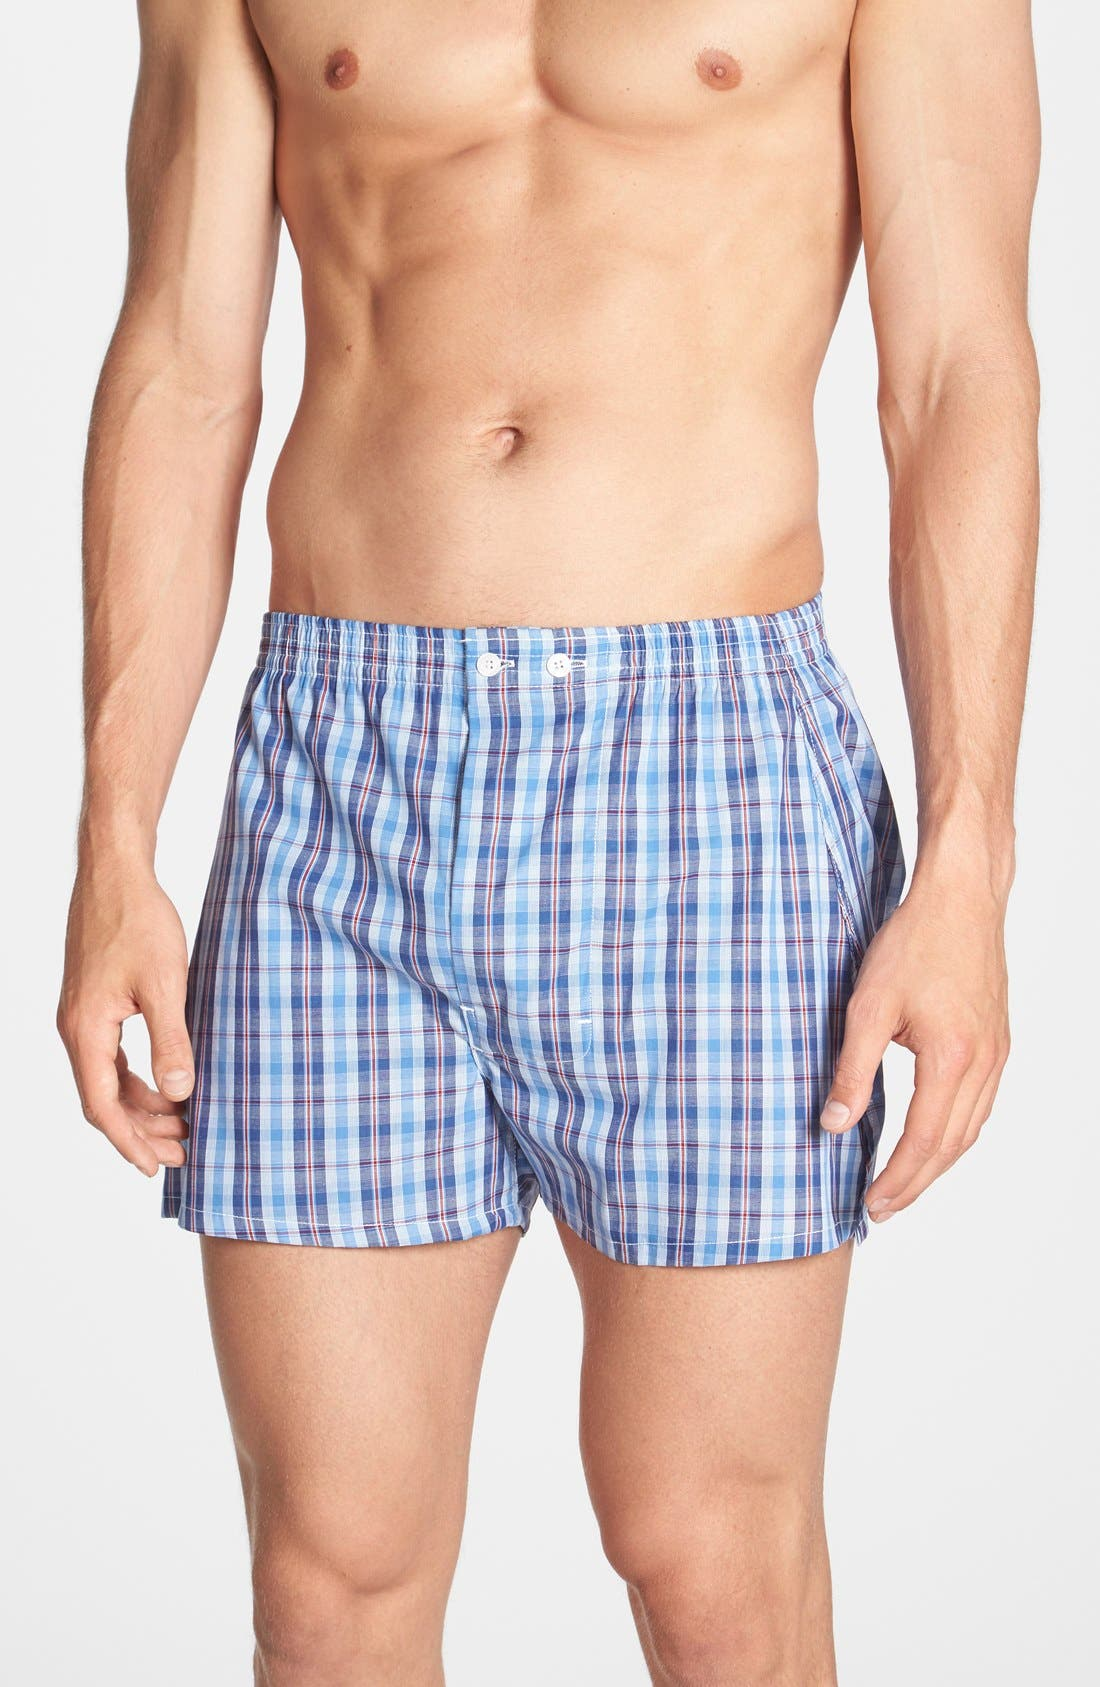 Alternate Image 1 Selected - Nordstrom Men's Shop Classic Fit Cotton Boxers